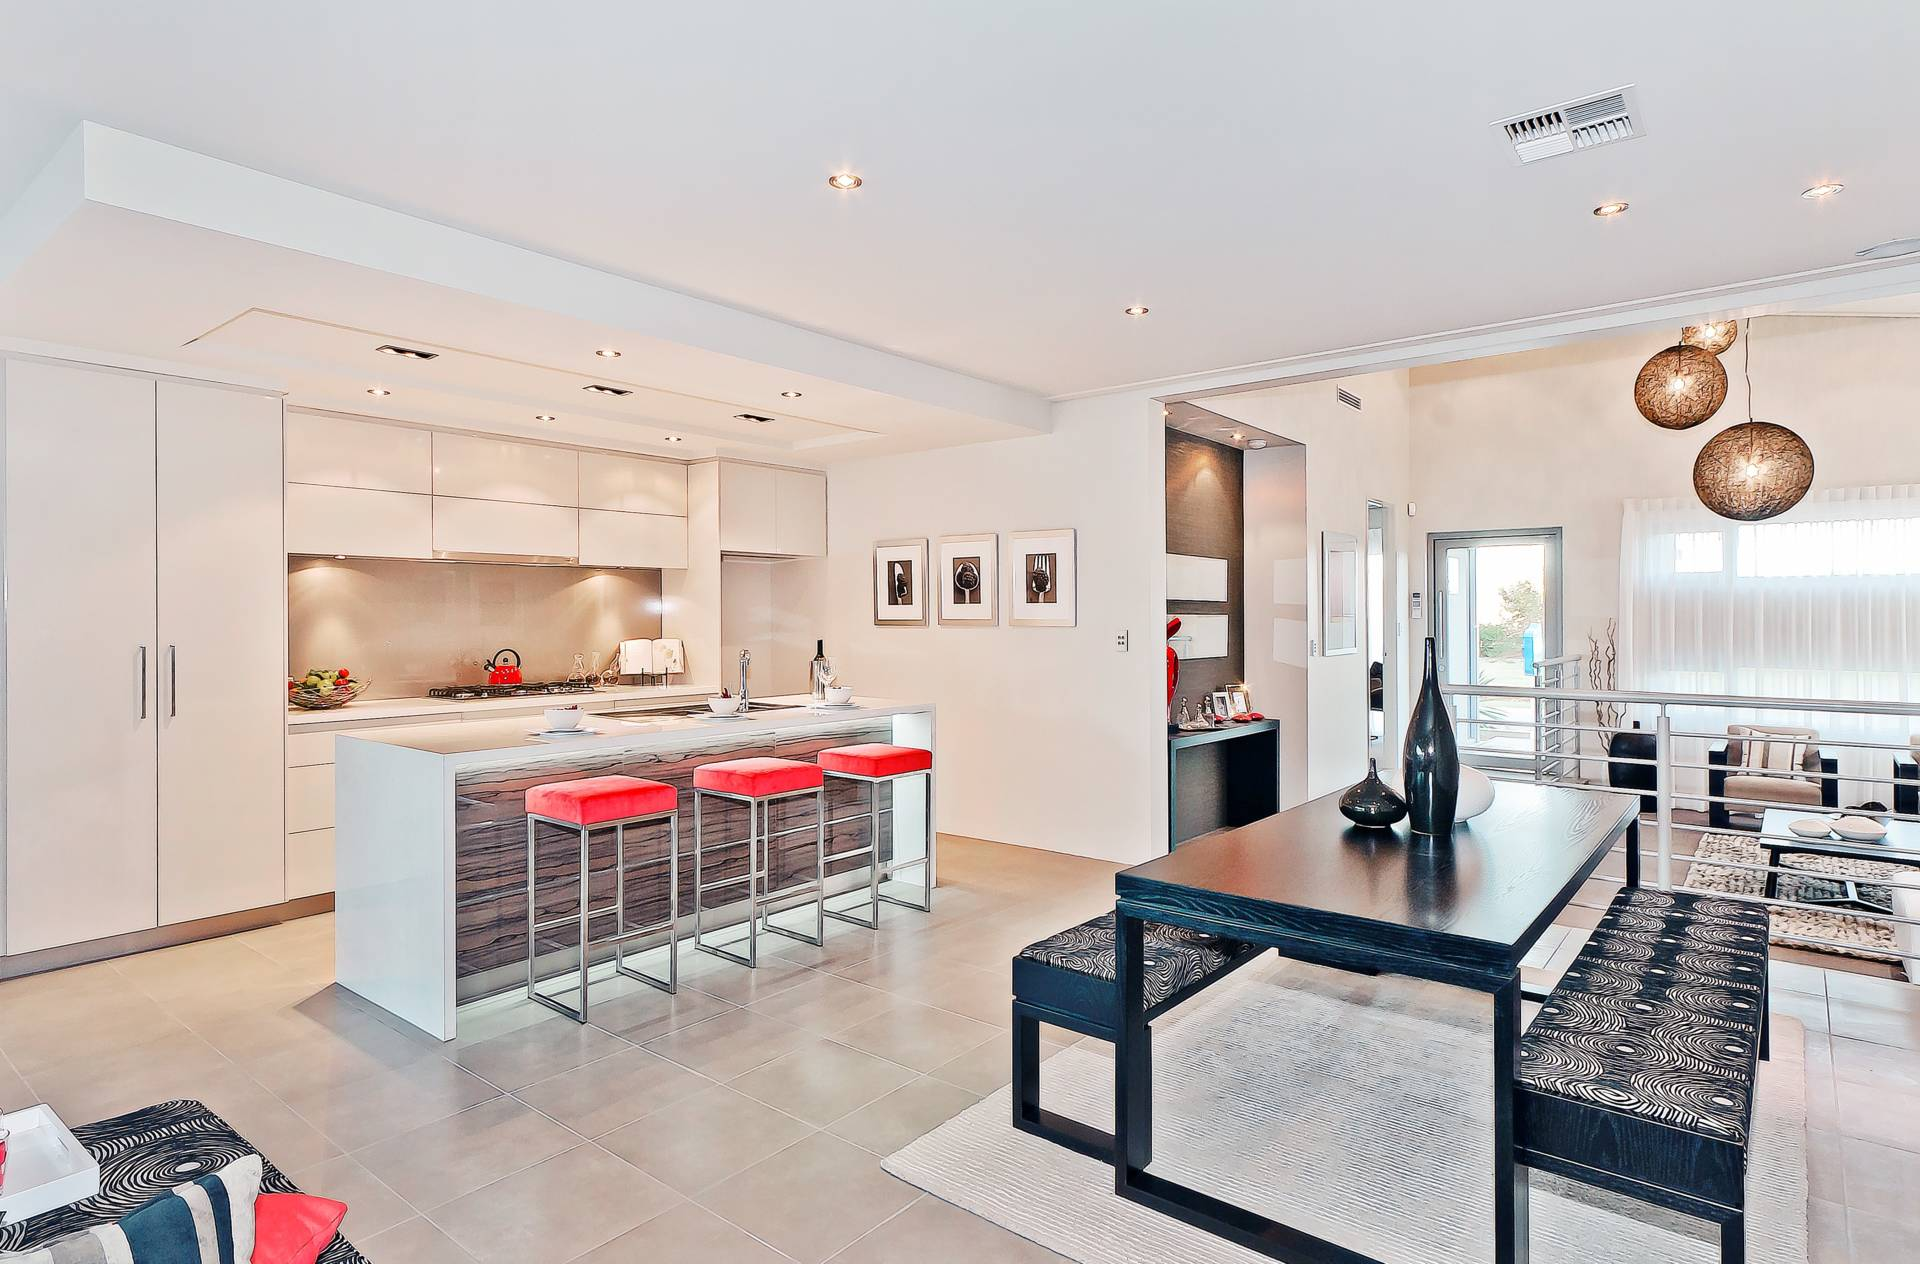 https://www.wowhomes.com.au/wp-content/uploads/2019/05/005-Open2view-ID172043-991-Broadway-Boulevard__Cropped.jpg